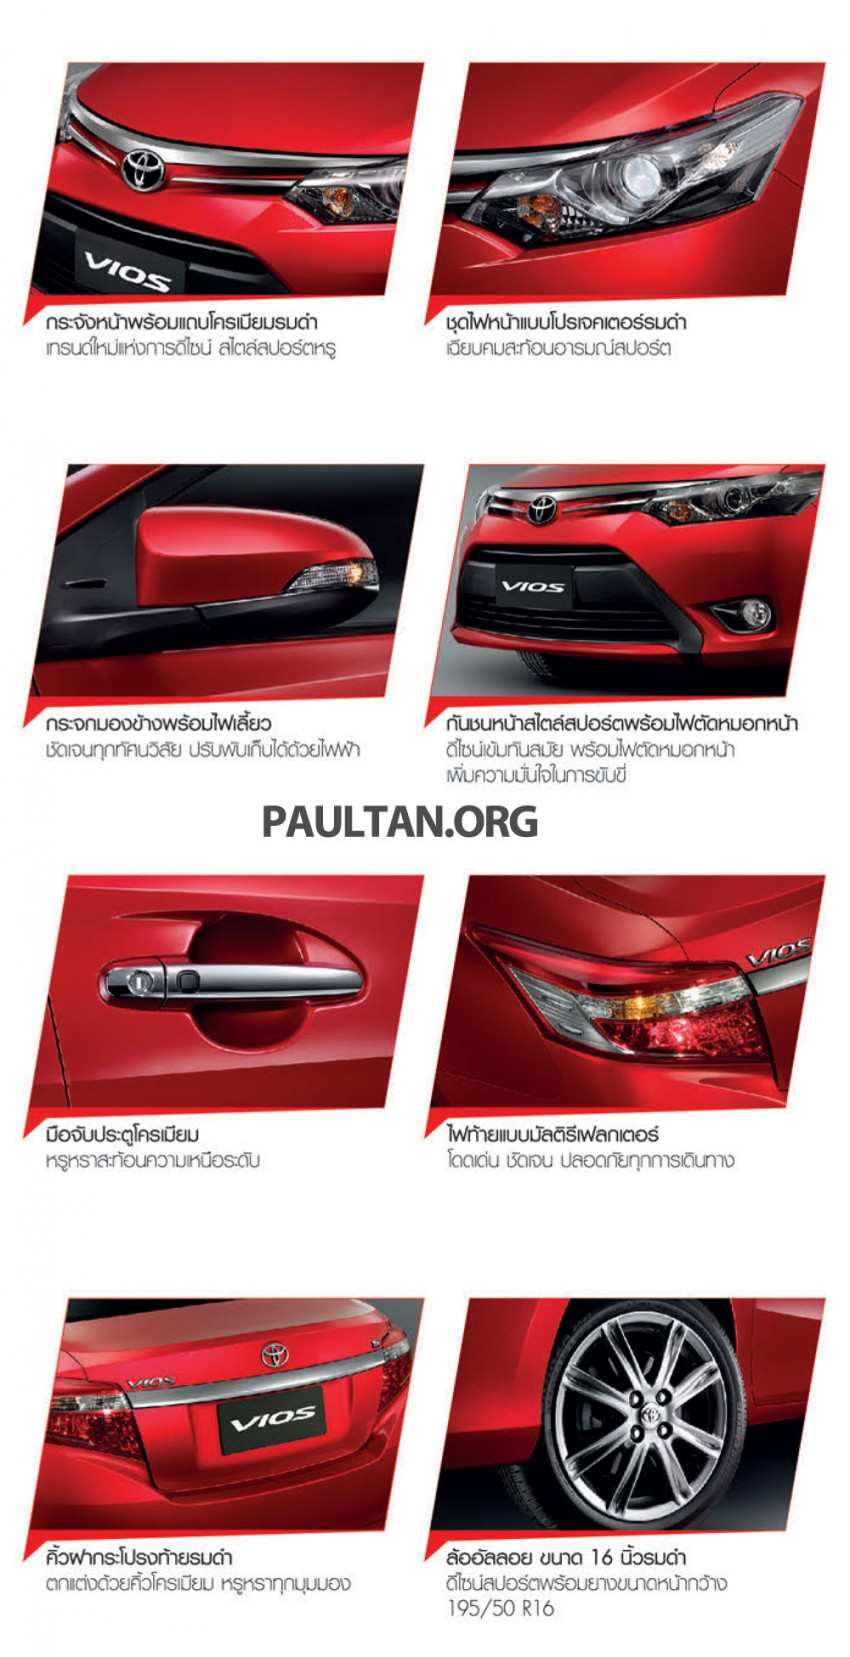 2013 Toyota Vios launched in Thailand – full details Image #163544